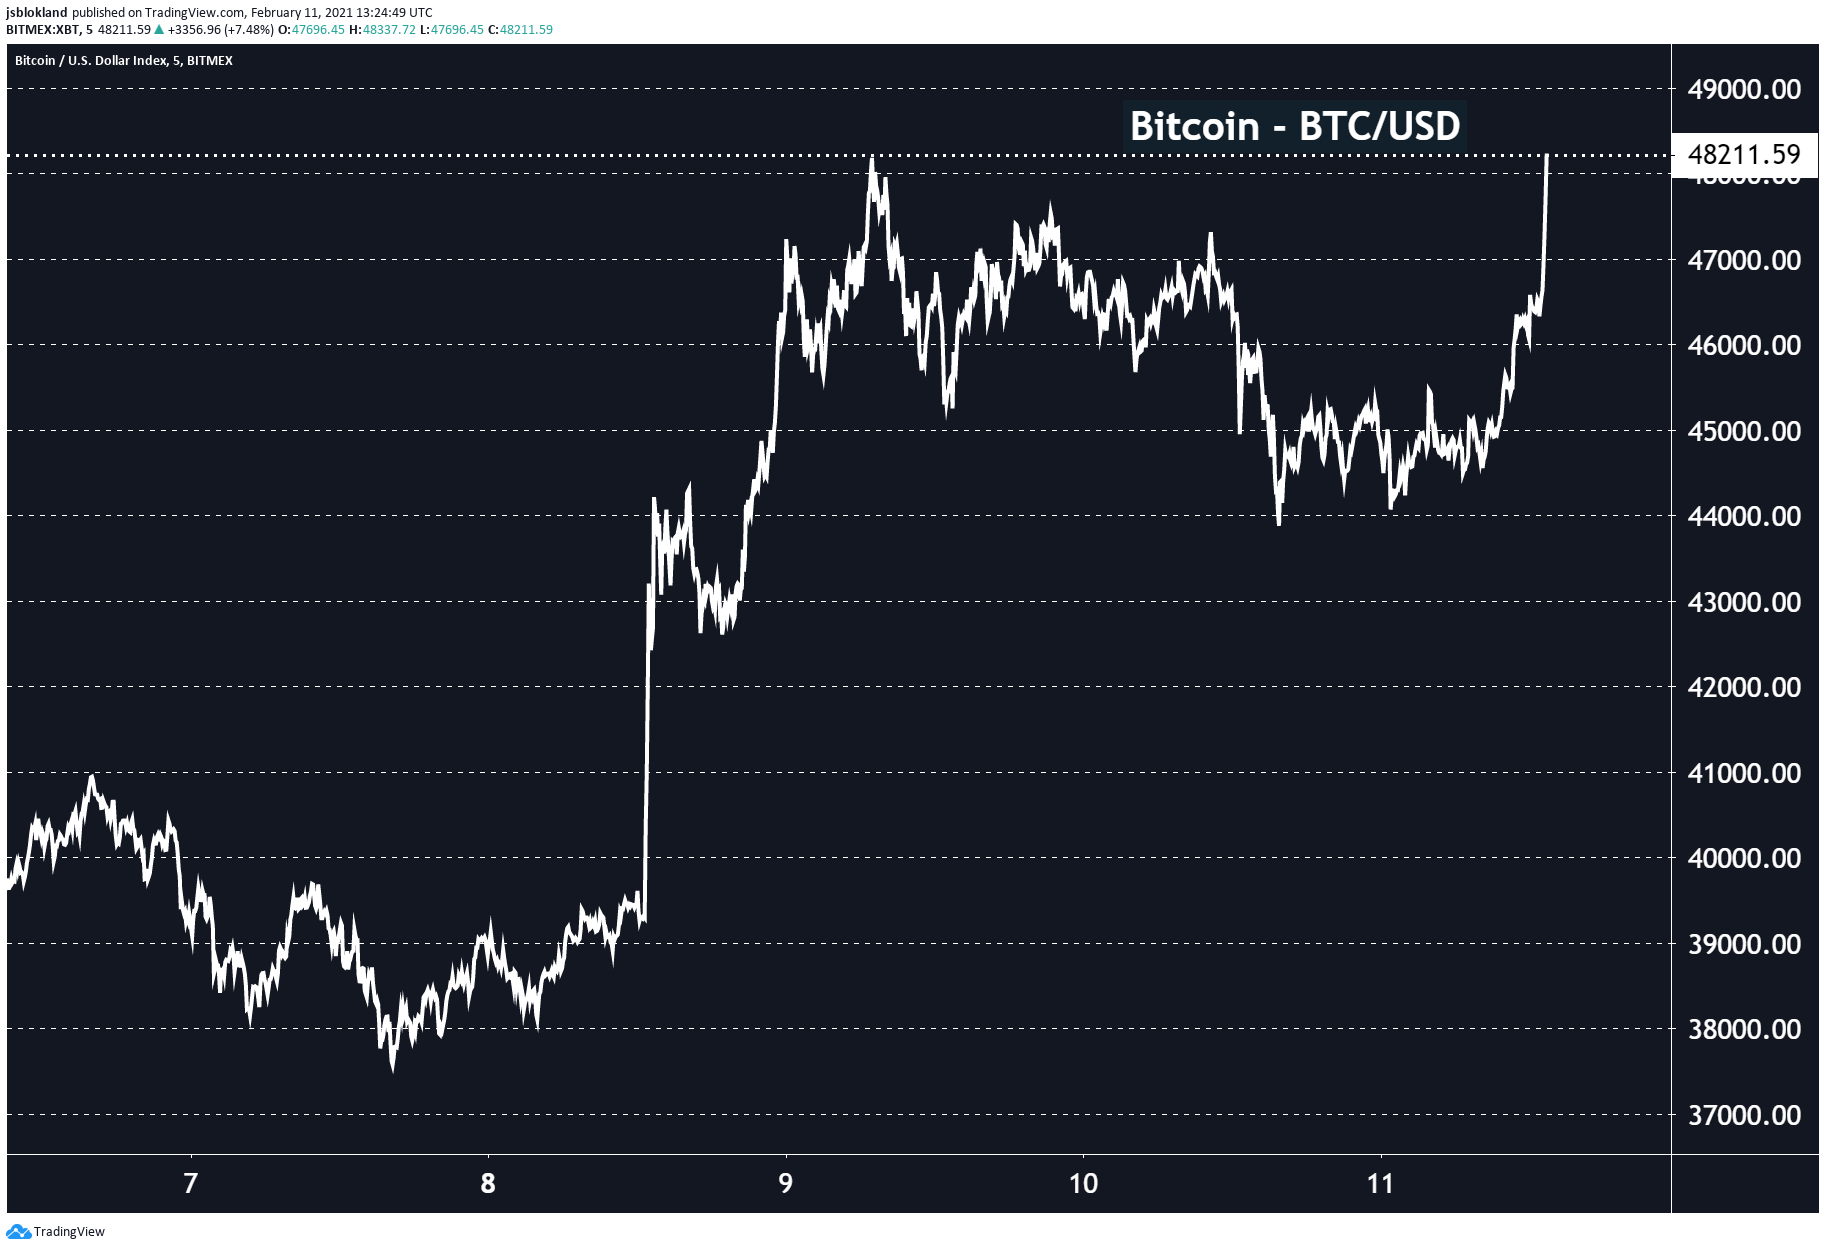 Bitcoin flirting once again with it all time high